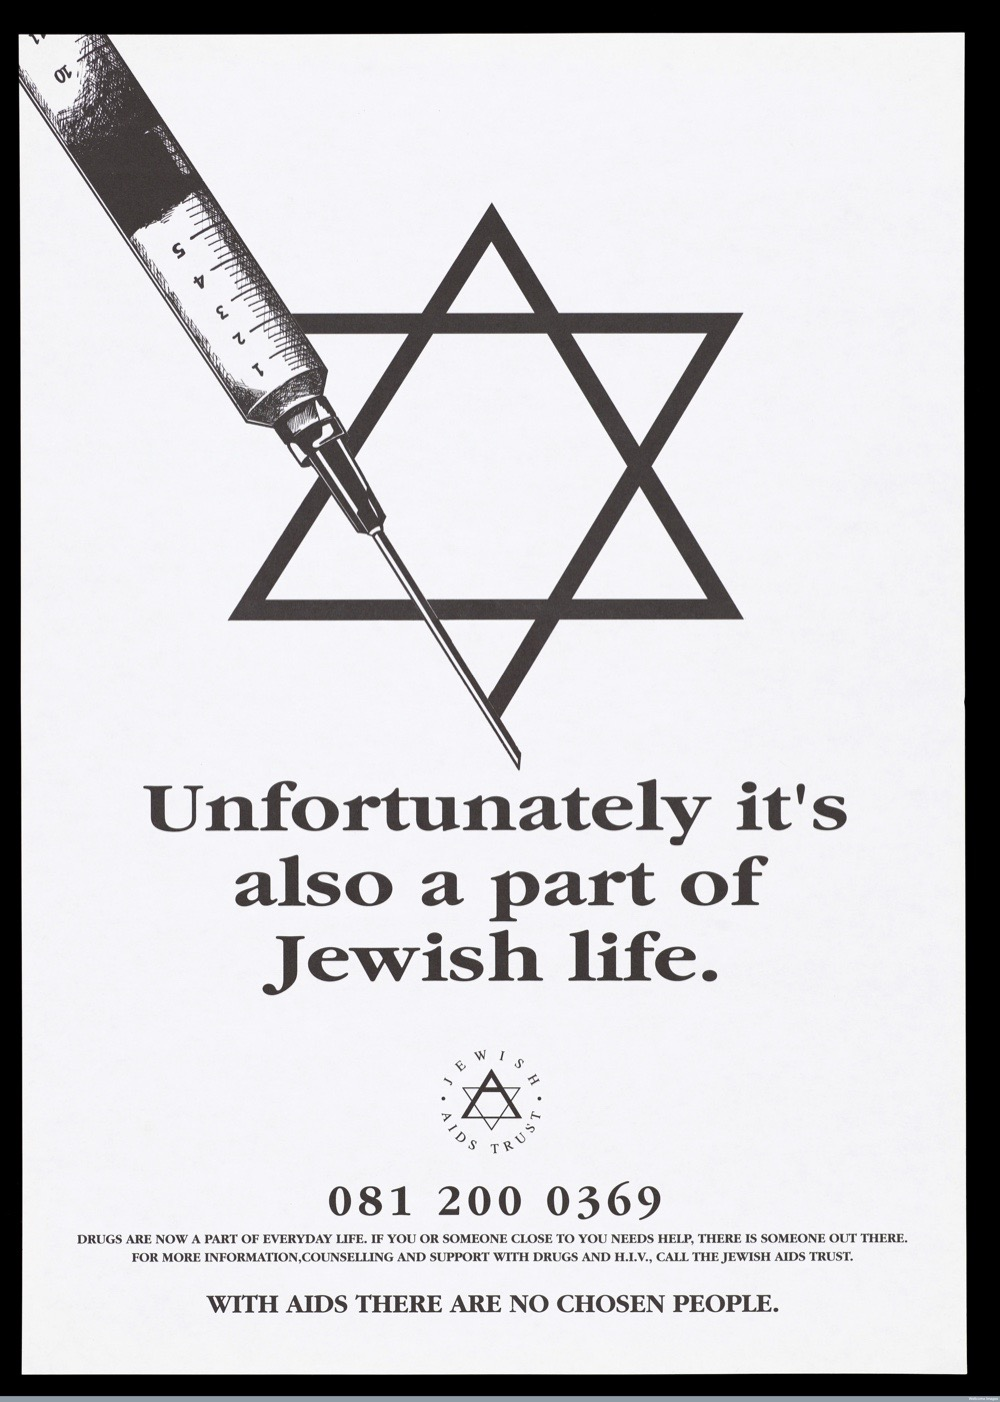 L0052036 The star of David incorporating a needle; representing AIDS Credit: Wellcome Library, London. Wellcome Images images@wellcome.ac.uk http://wellcomeimages.org The star of David incorporating a needle; representing AIDS among Jews and the work of the Jewish Aids Trust. Black and white lithograph. 19uu By: Jewish Aids Trust.Published: [19--]  Copyrighted work available under Creative Commons Attribution only licence CC BY 4.0 http://creativecommons.org/licenses/by/4.0/